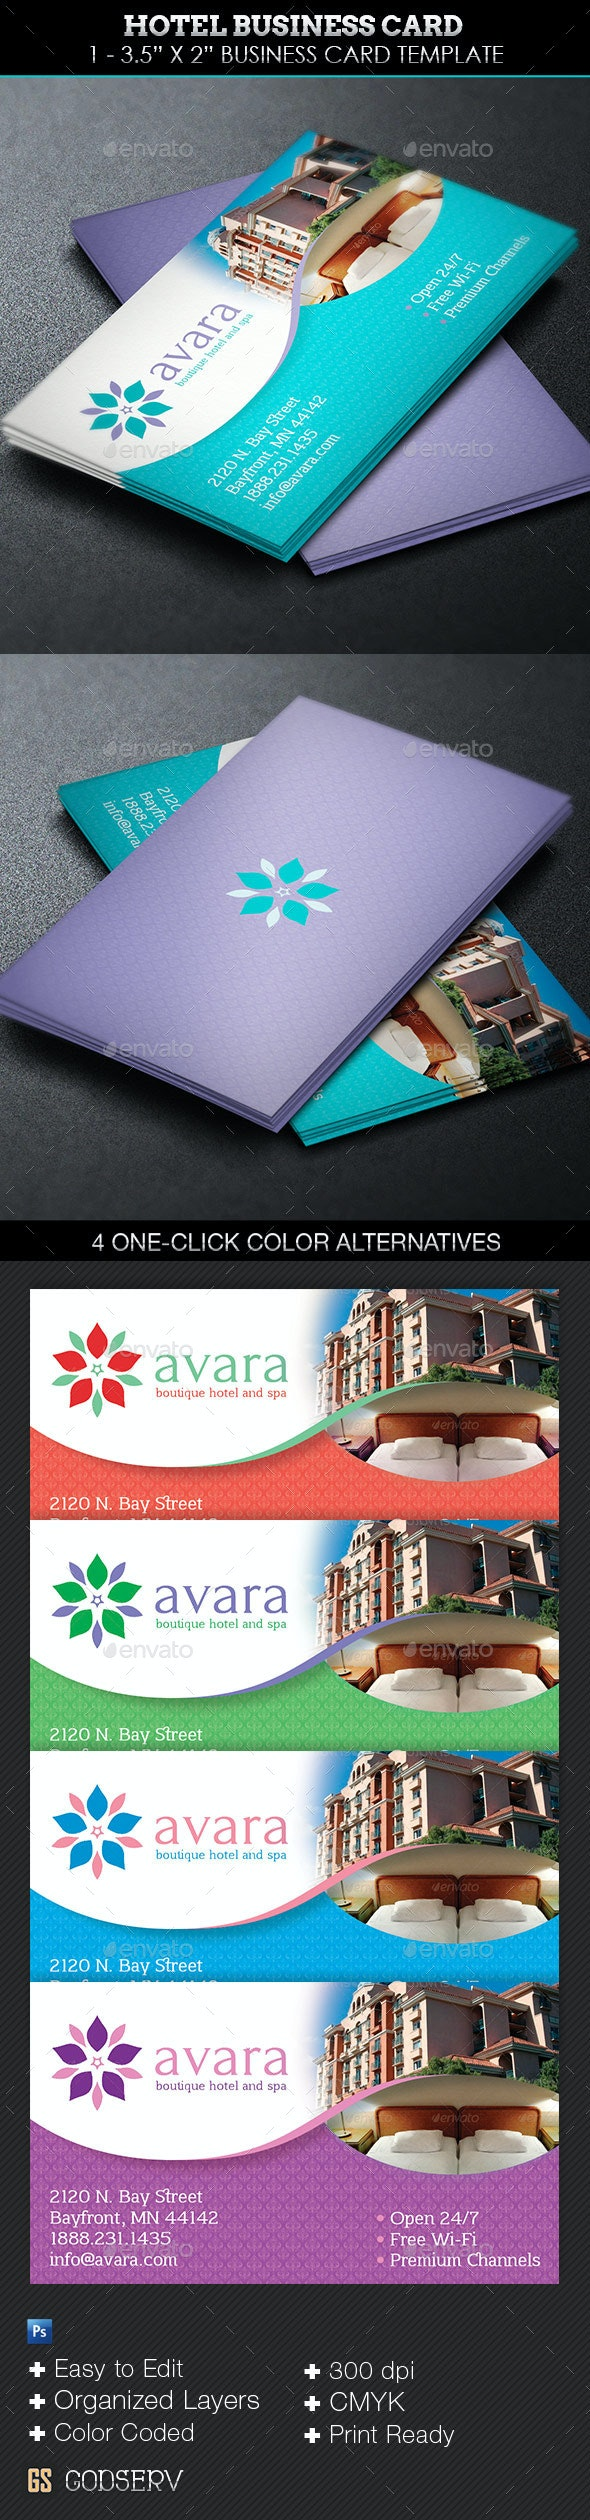 Hotel Business Card Template - Industry Specific Business Cards